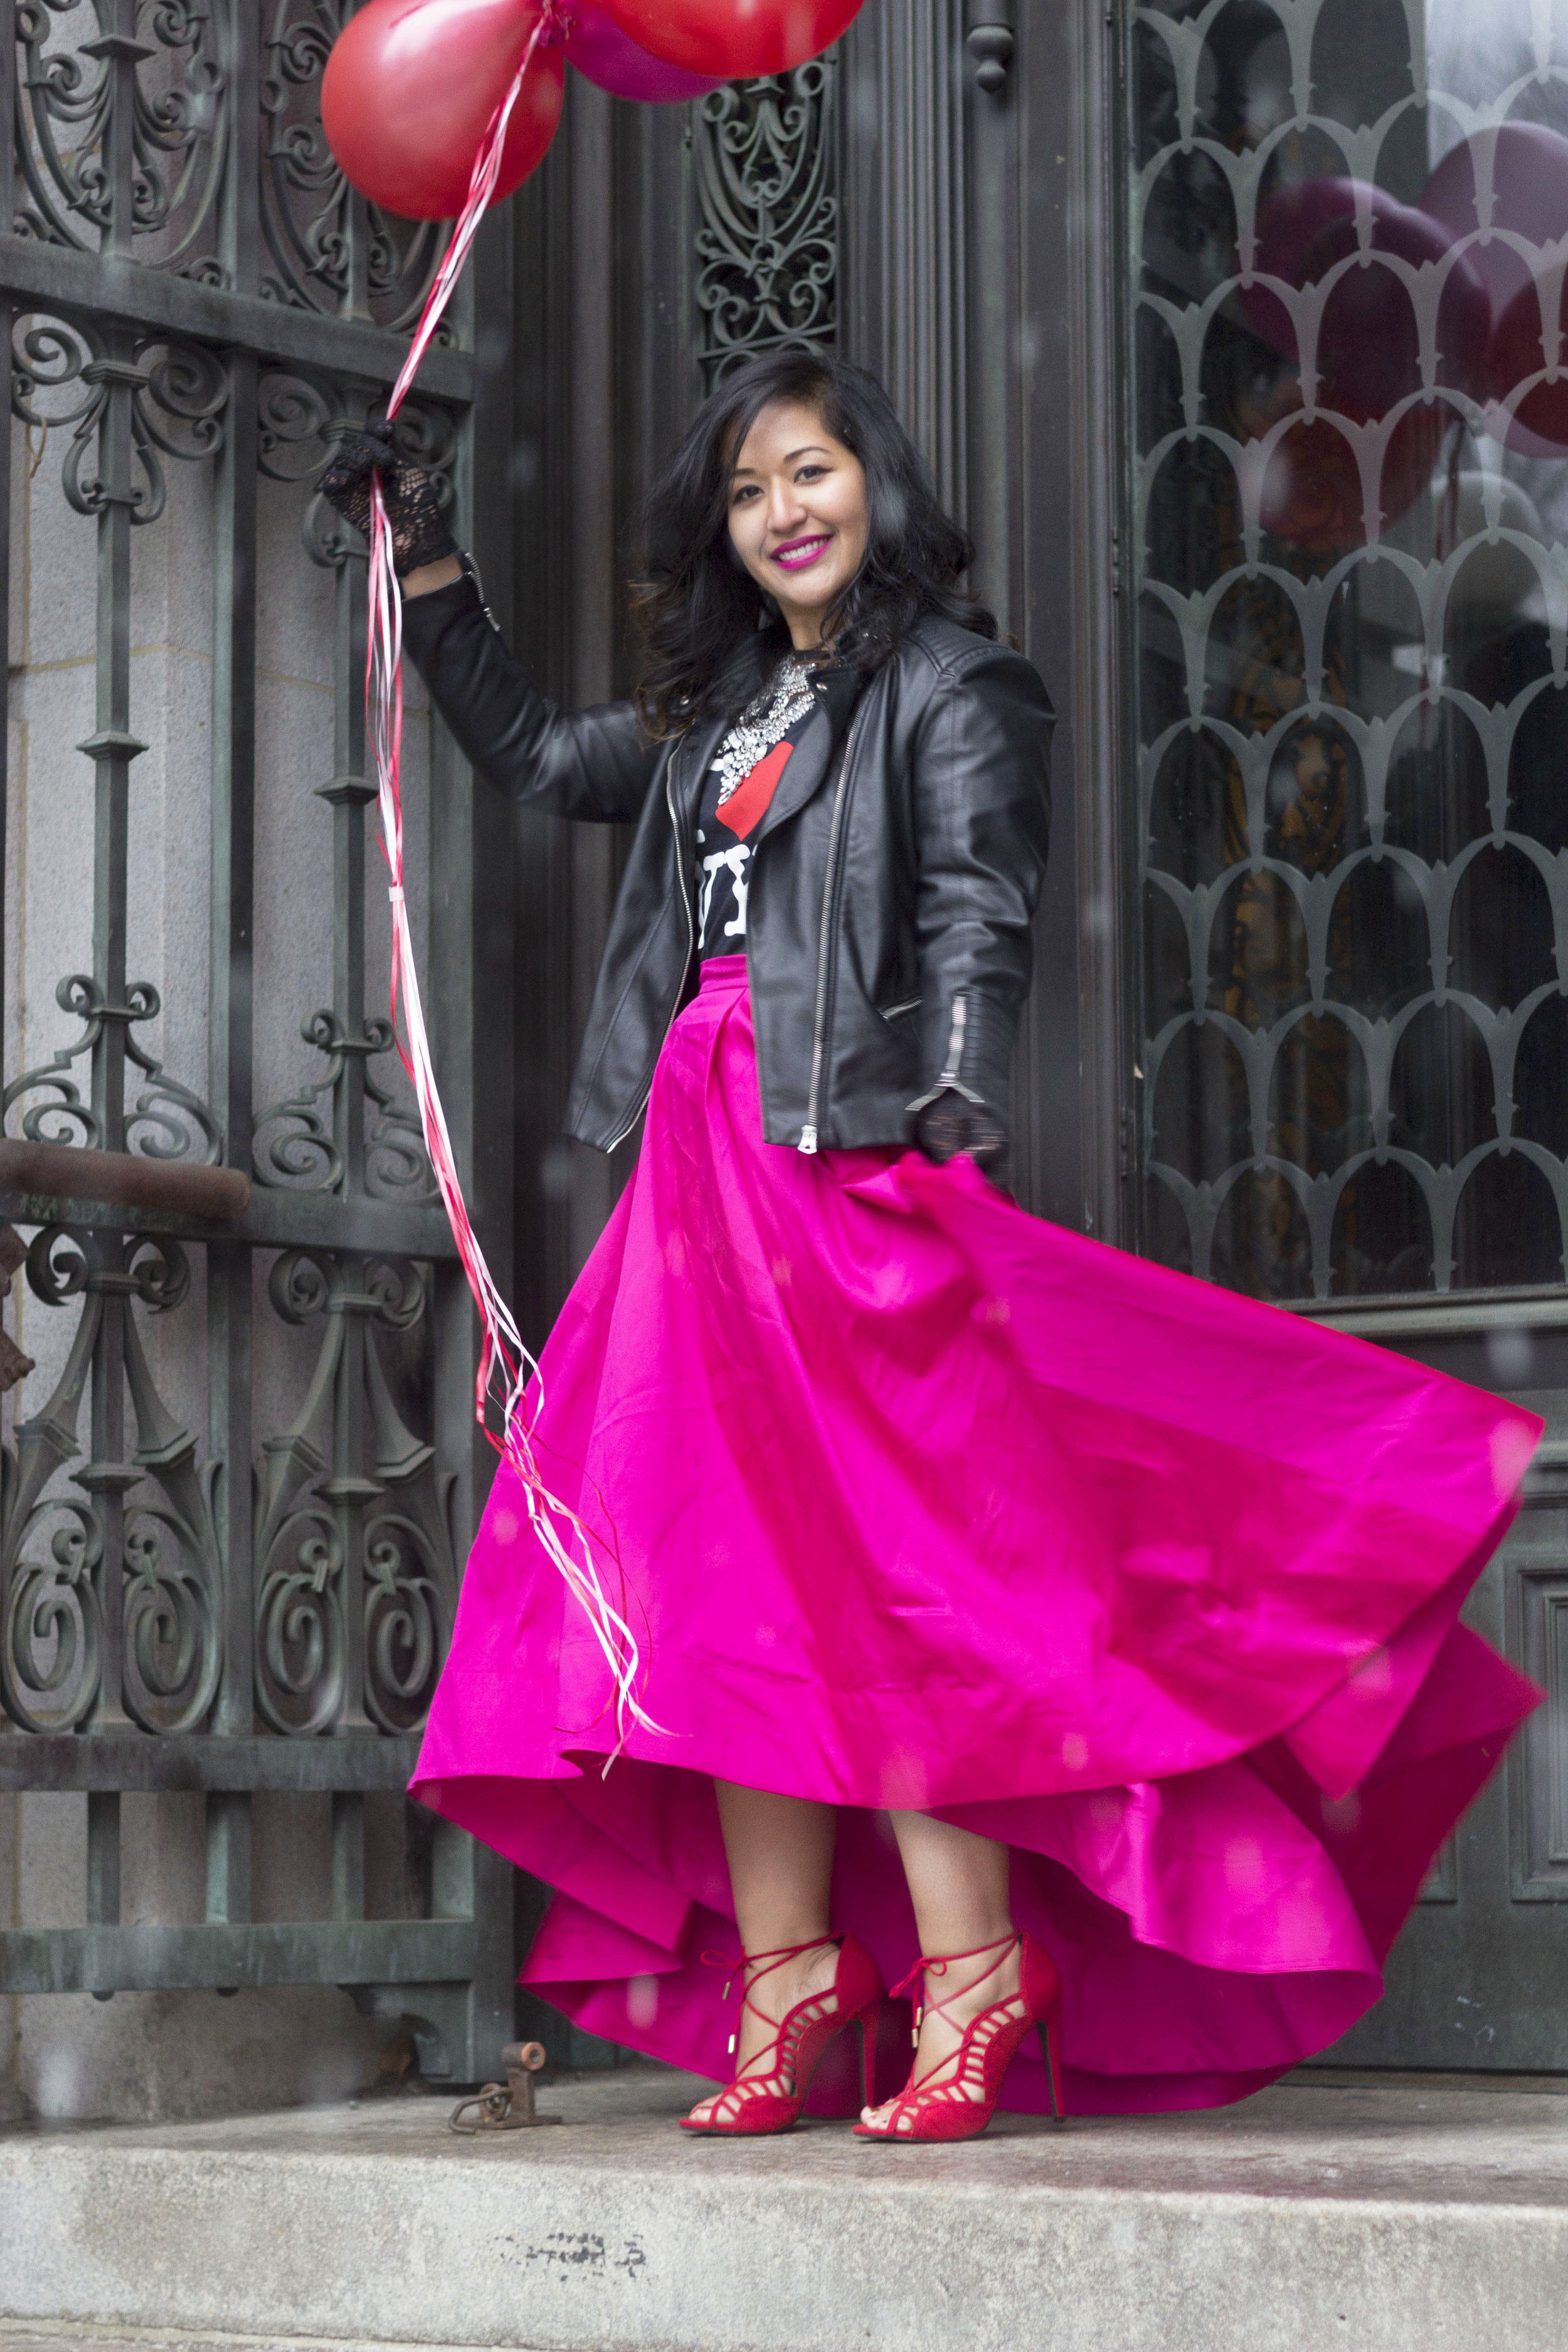 Krity S x Aidan Pink Skirt Valentines Day Look